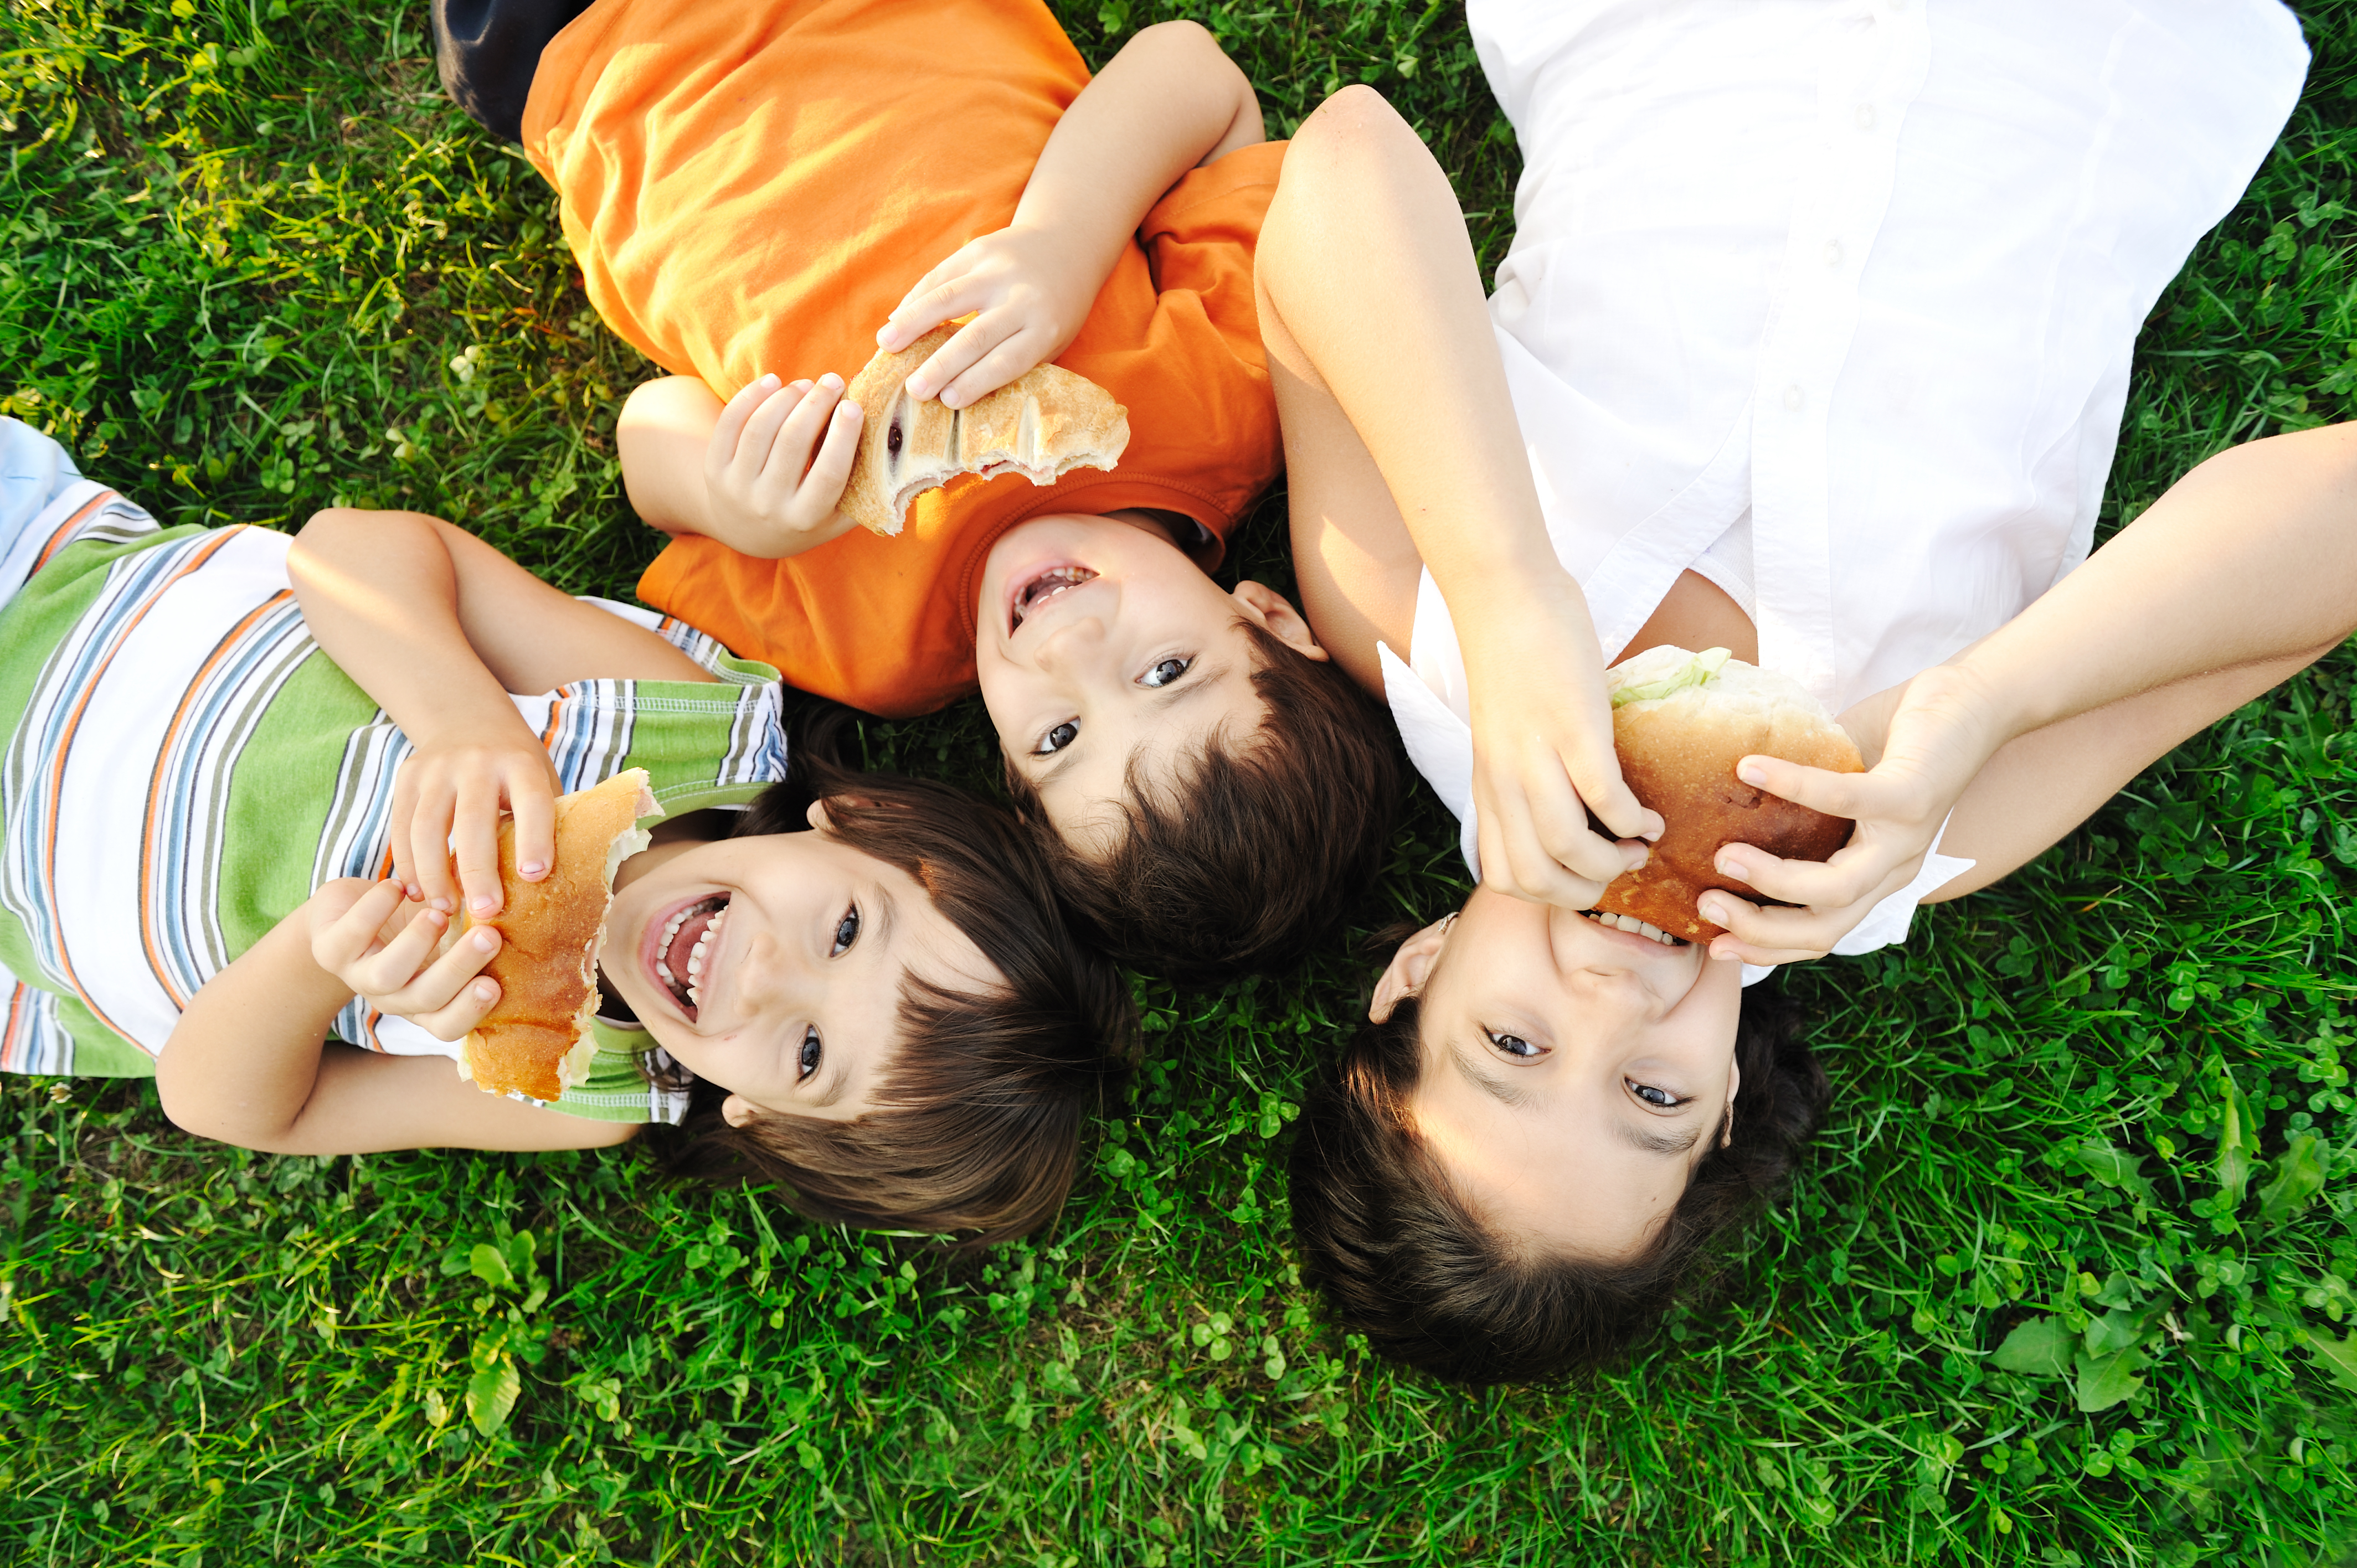 photograph of children eating bread